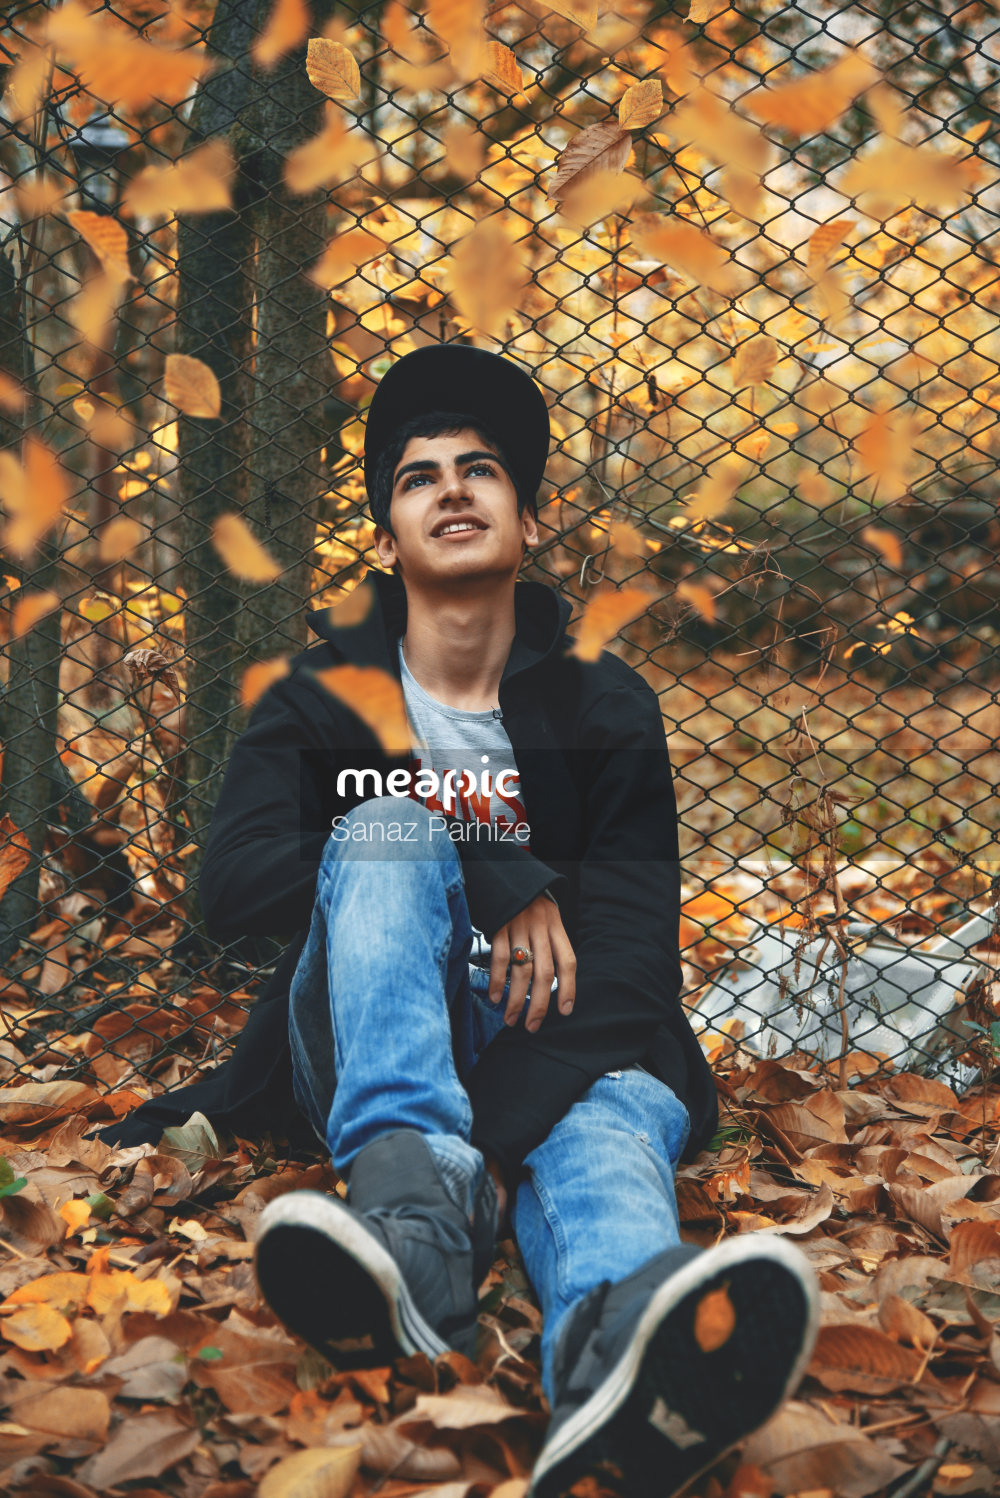 Person, Outdoor, Man Stock Photo · Meapic